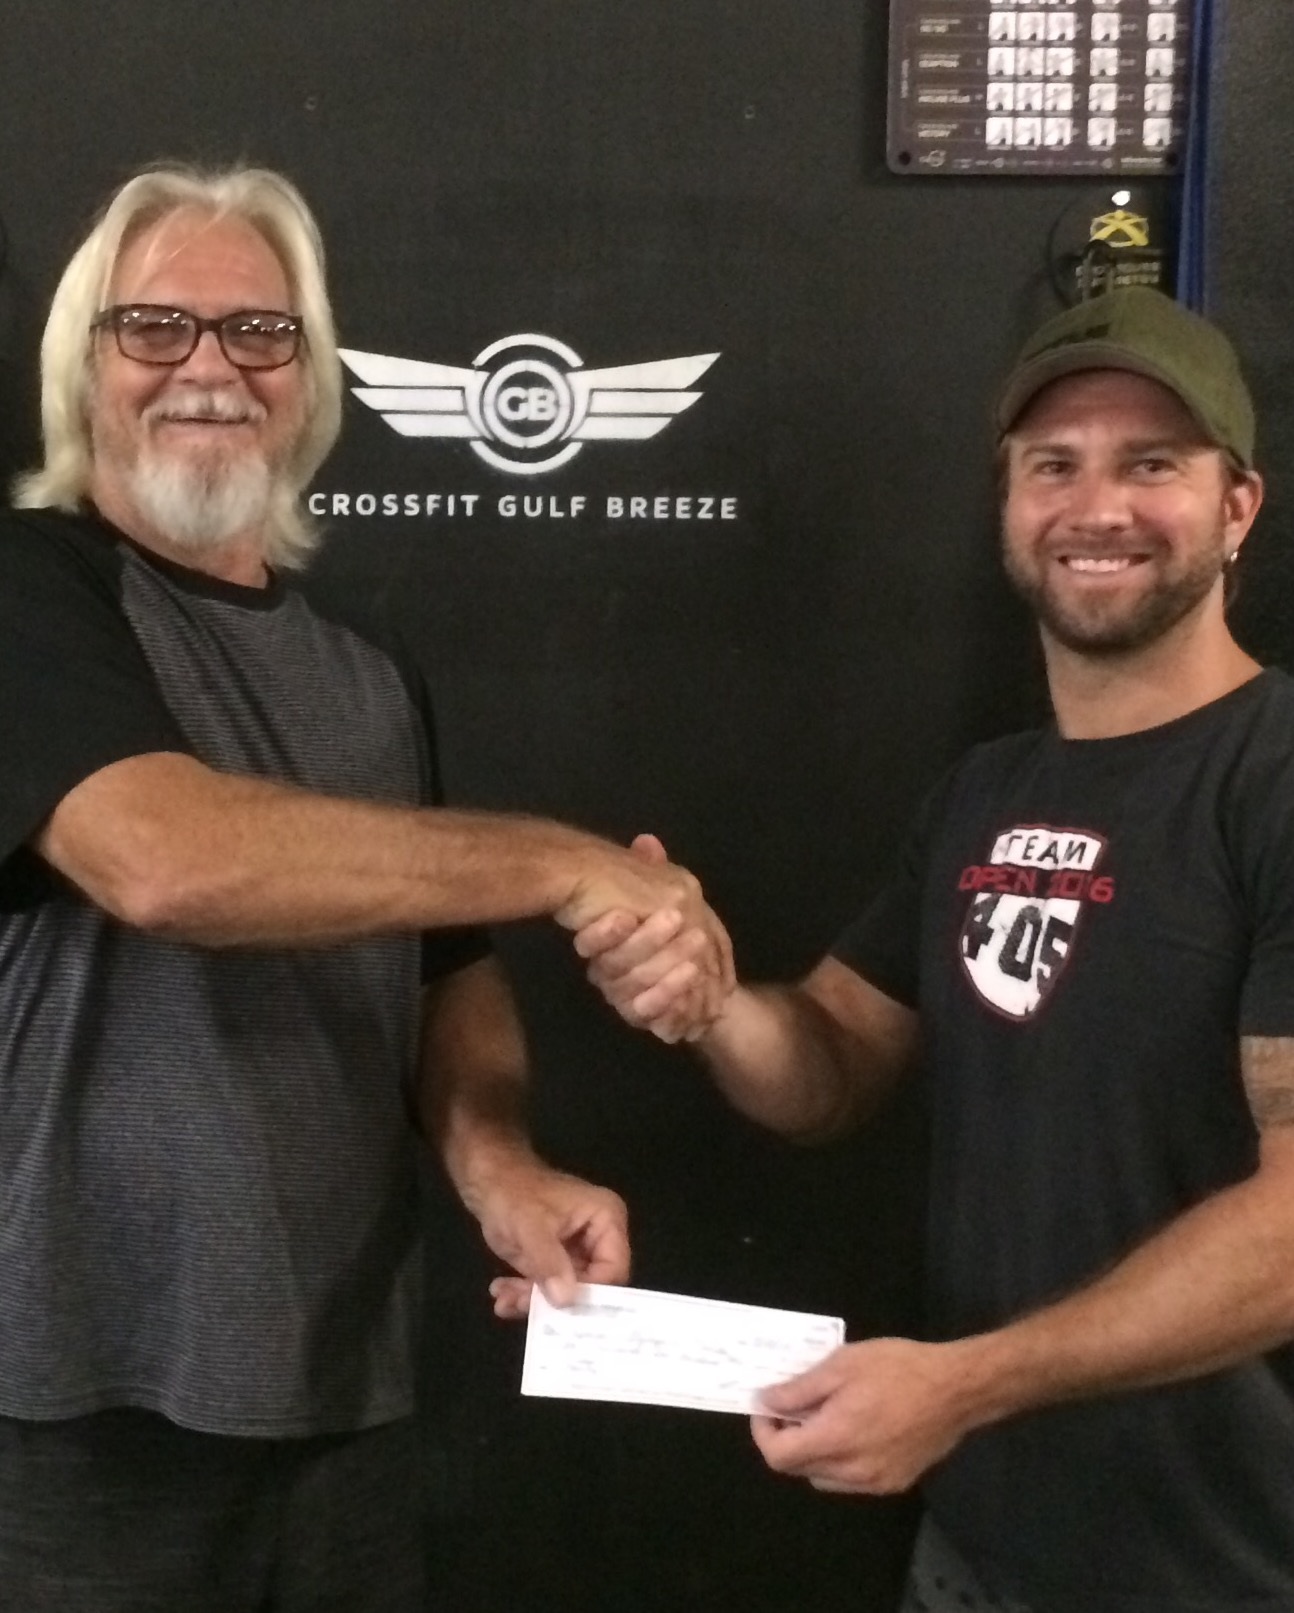 Michael Stone (the Director of Escambia and Santa Rosa Counties of Special Olympics Florida) receiving the donation check from Jarett Venn (owner of CFGB).